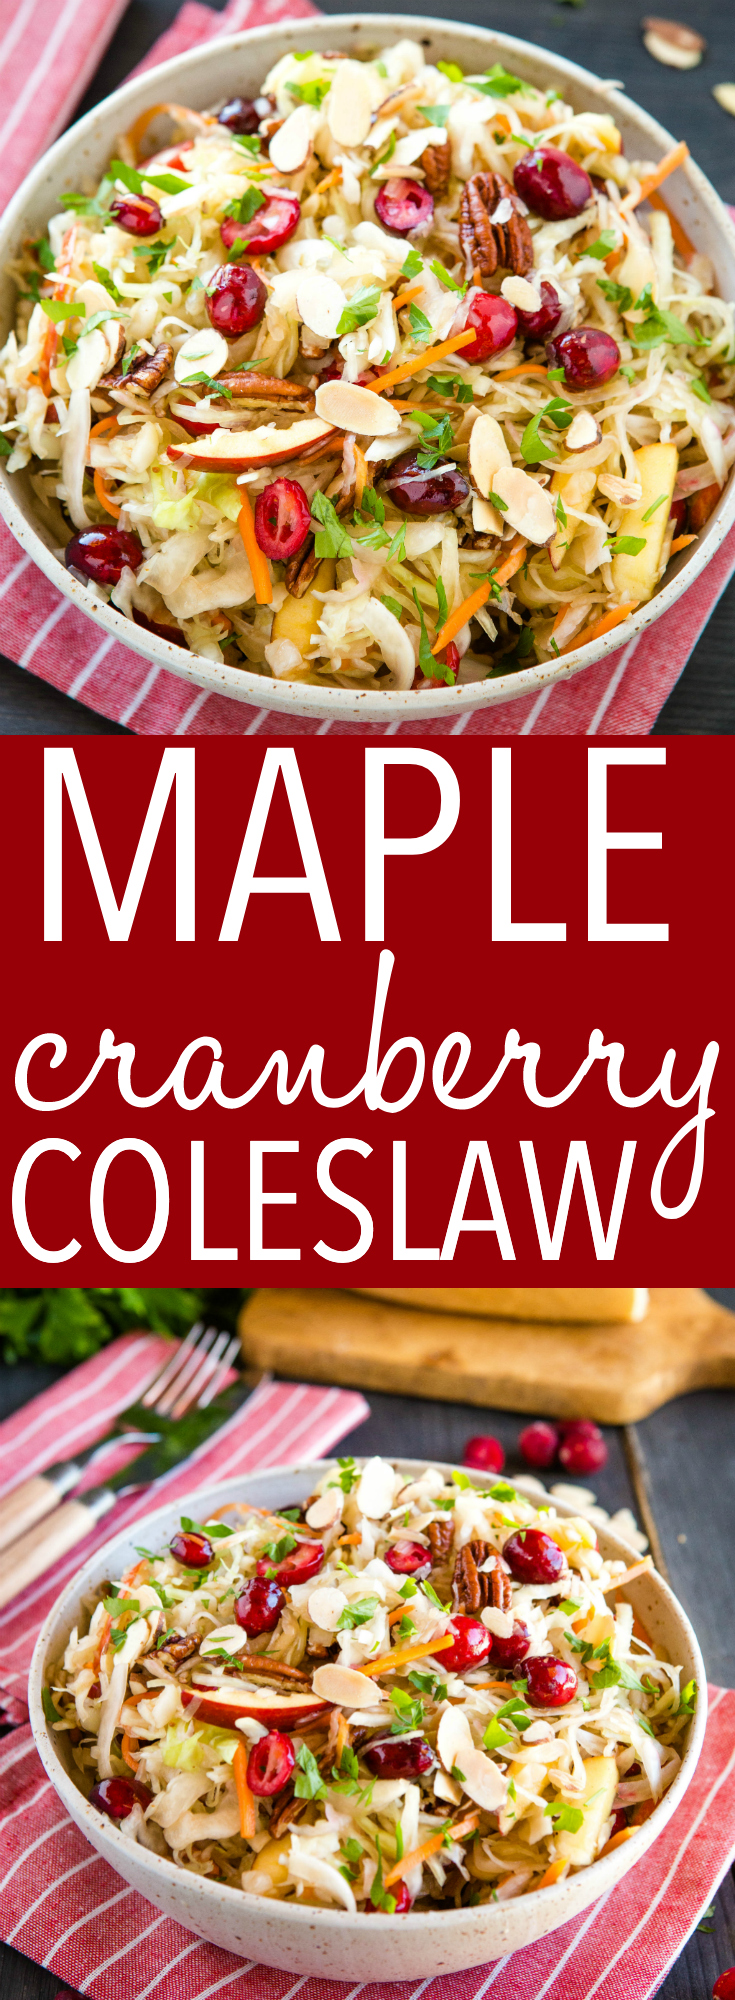 This Maple Cranberry Coleslaw is a delicious and healthy holiday side dish made with fresh cranberries, pecans and maple syrup! Recipe from thebusybaker.ca! #coleslaw #holiday #sidedish #salad #christmas #cranberry via @busybakerblog